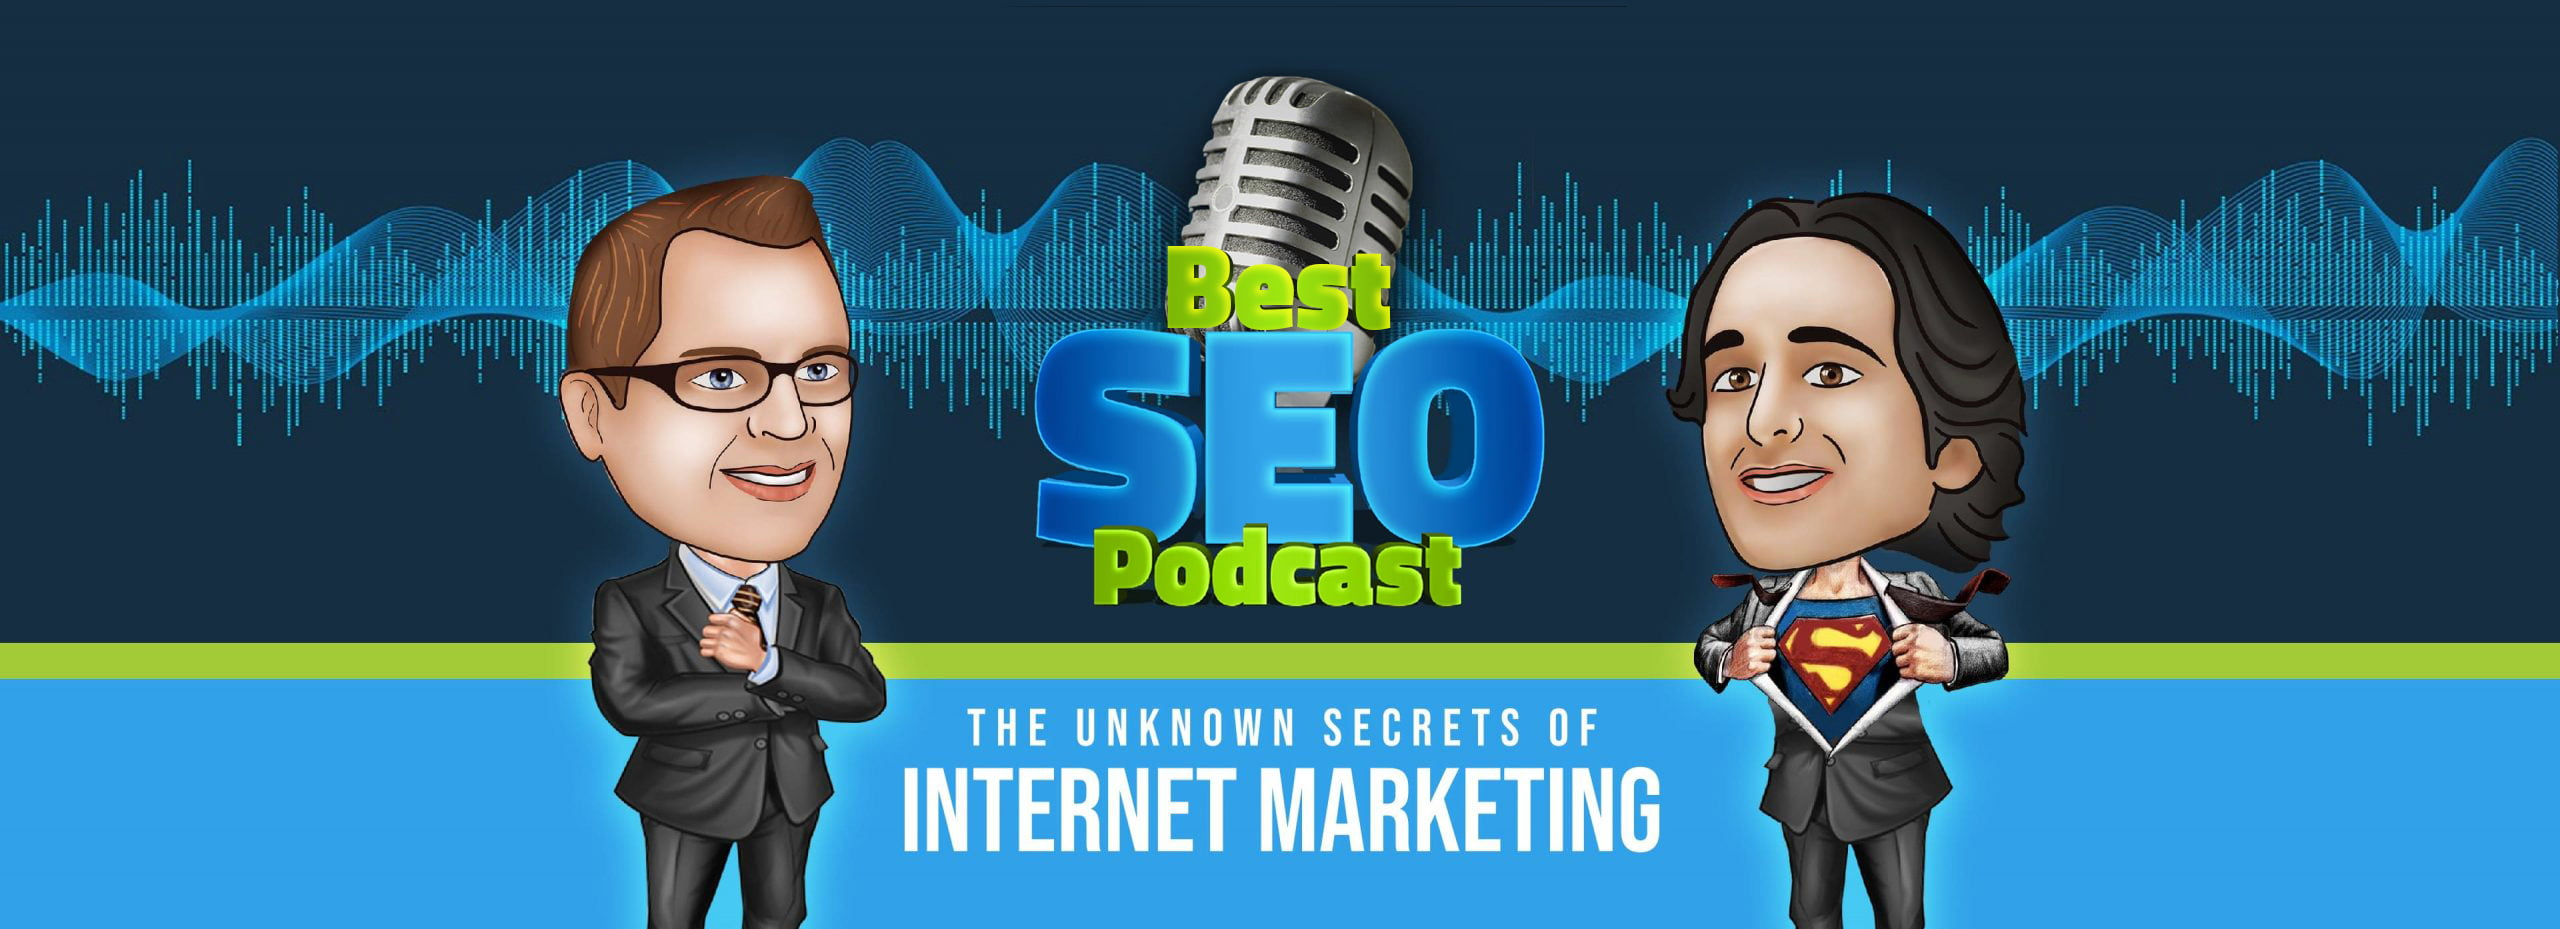 Best SEO Podcast | EWR Digital